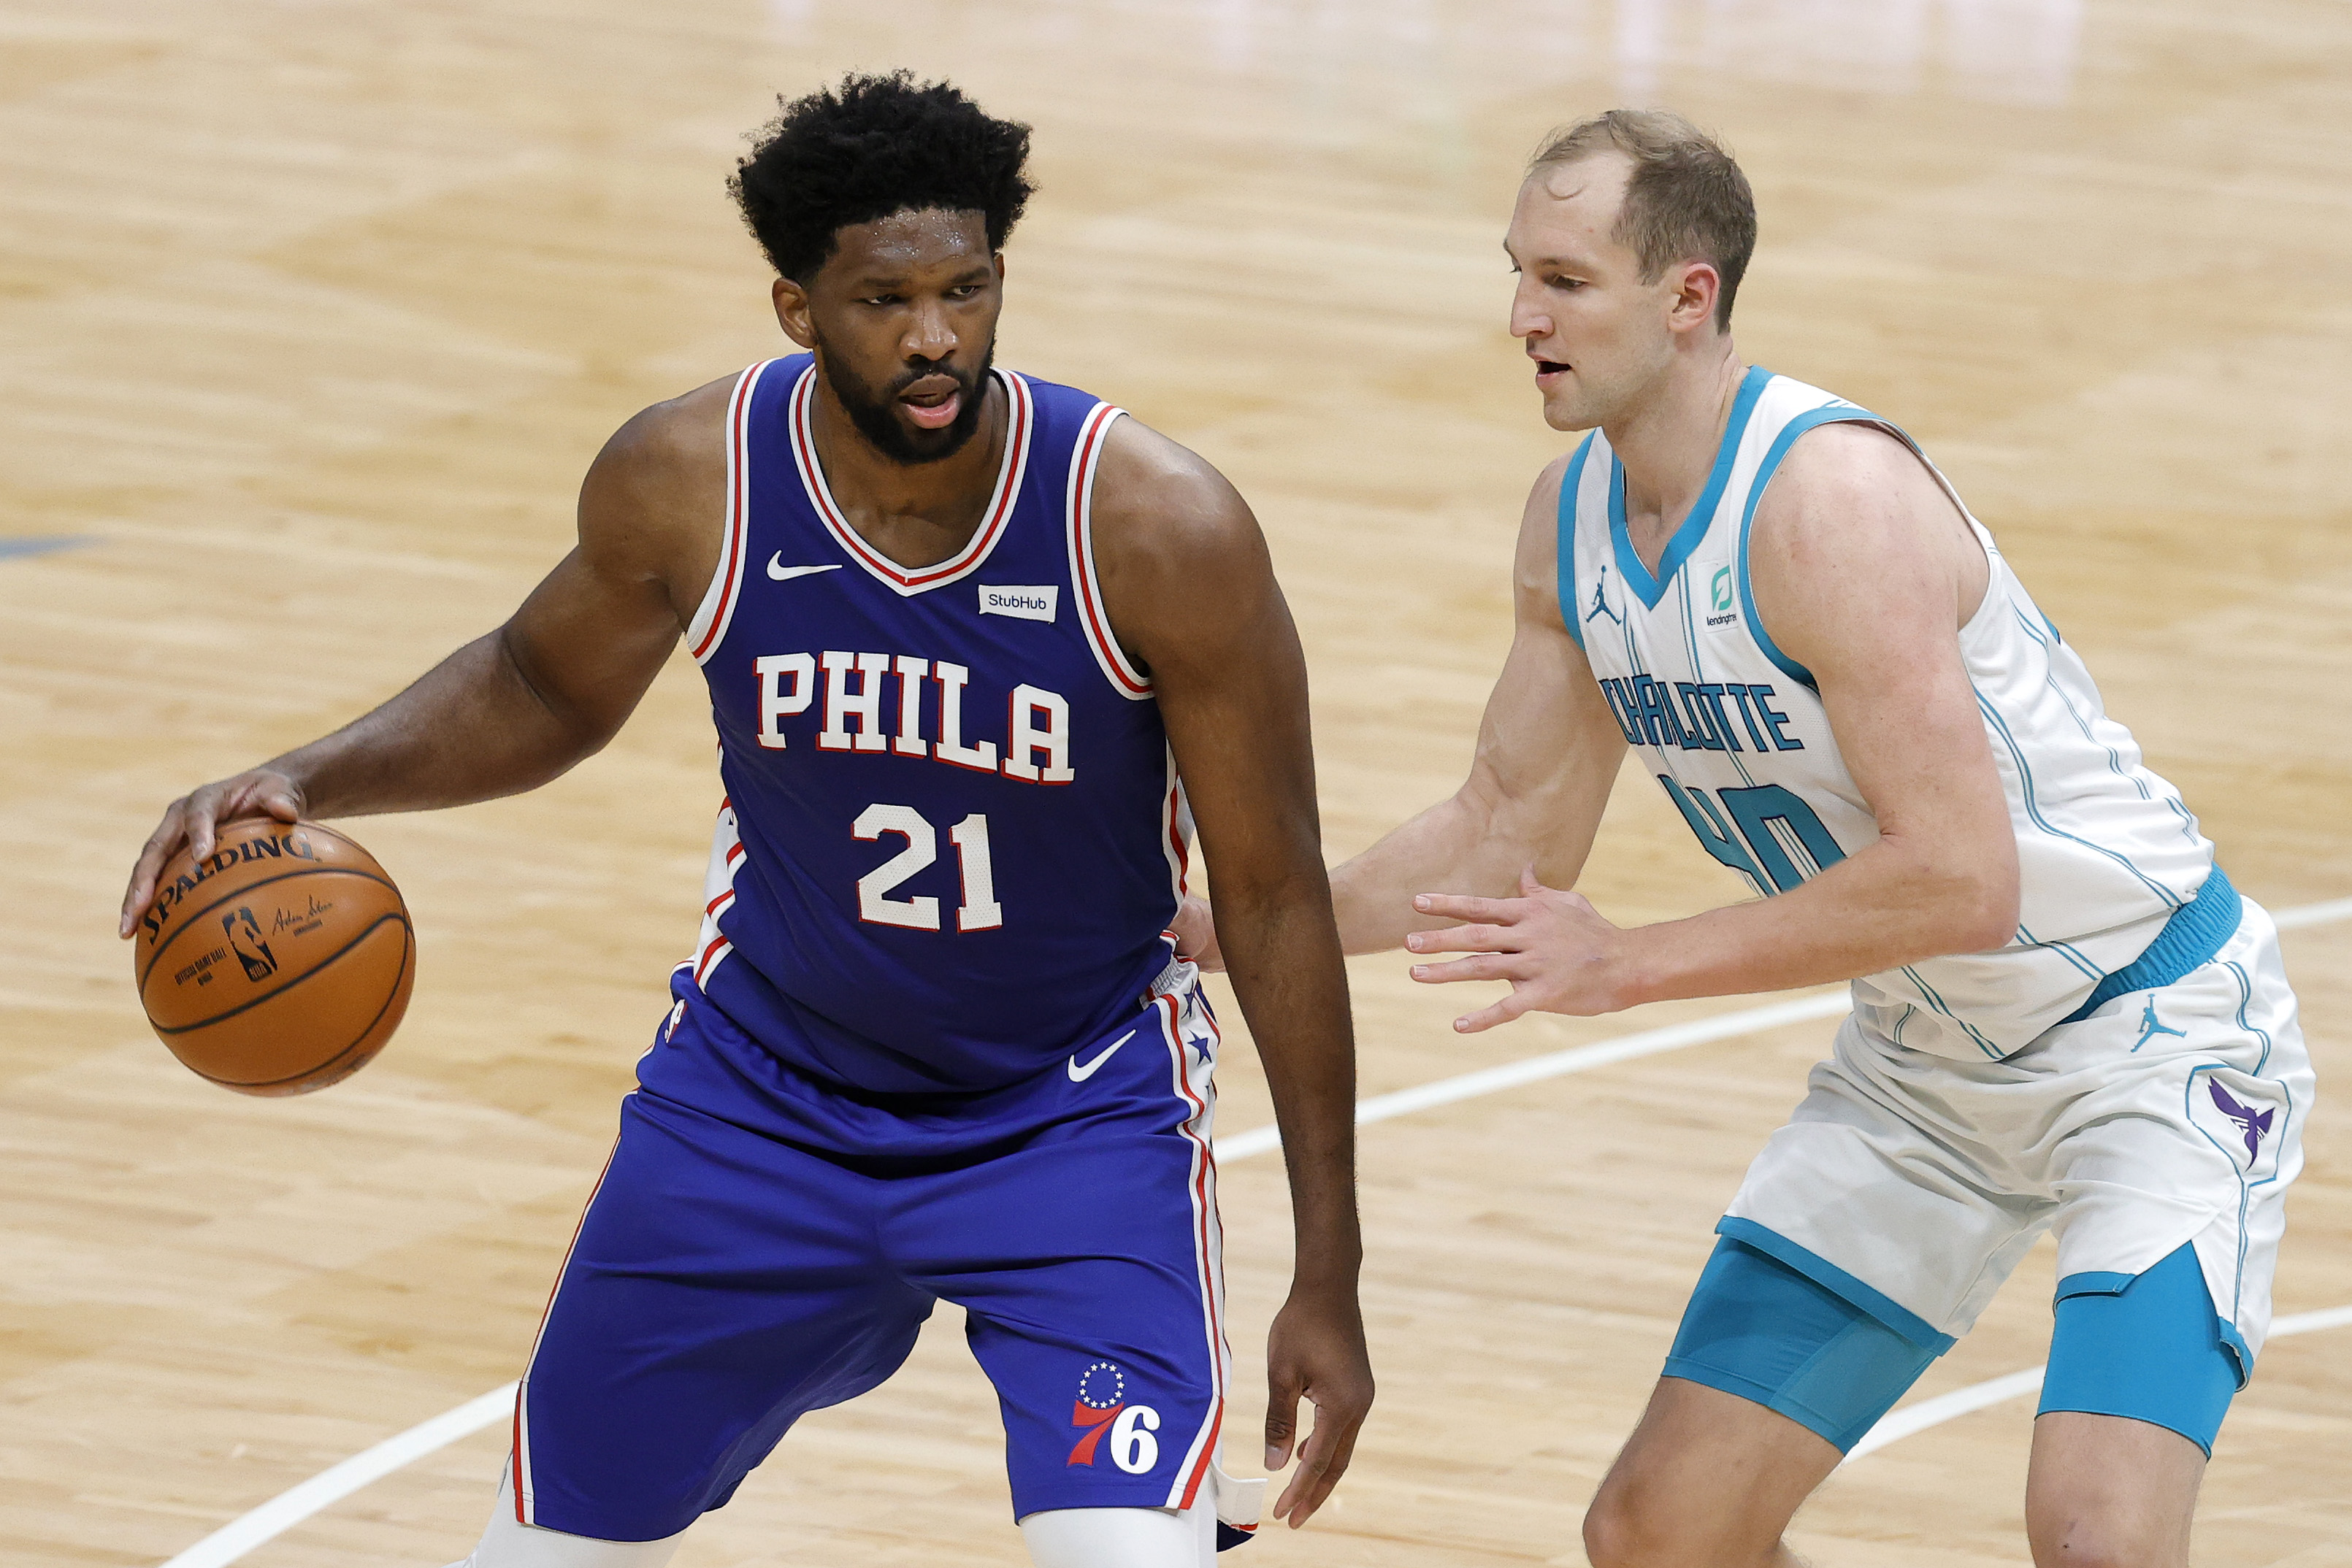 CHARLOTTE, NORTH CAROLINA - FEBRUARY 03: Joel Embiid #21 of the Philadelphia 76ers posts up against Cody Zeller #40 of the Charlotte Hornets during the second quarter of their game against the Charlotte Hornets at Spectrum Center on February 03, 2021 in Charlotte, North Carolina. NOTE TO USER: User expressly acknowledges and agrees that, by downloading and or using this photograph, User is consenting to the terms and conditions of the Getty Images License Agreement.